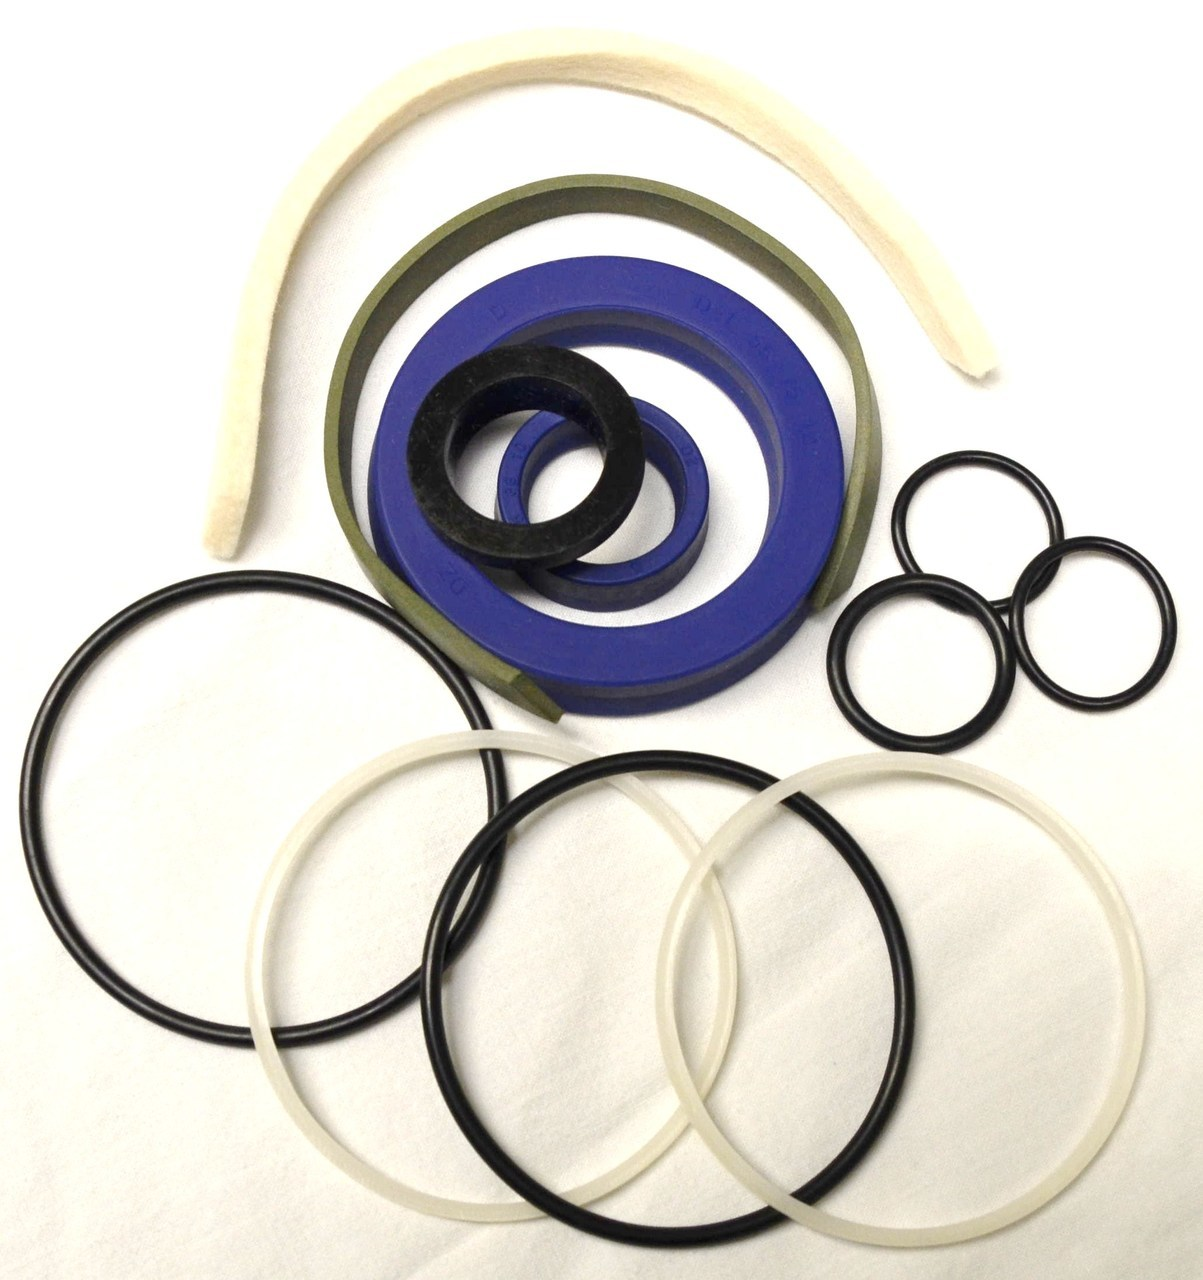 DP8-9180 CYLINDER SEAL KIT FOR Direct-Lift 4 POST CAR LIFTS PP8, PP8P & PP8PL